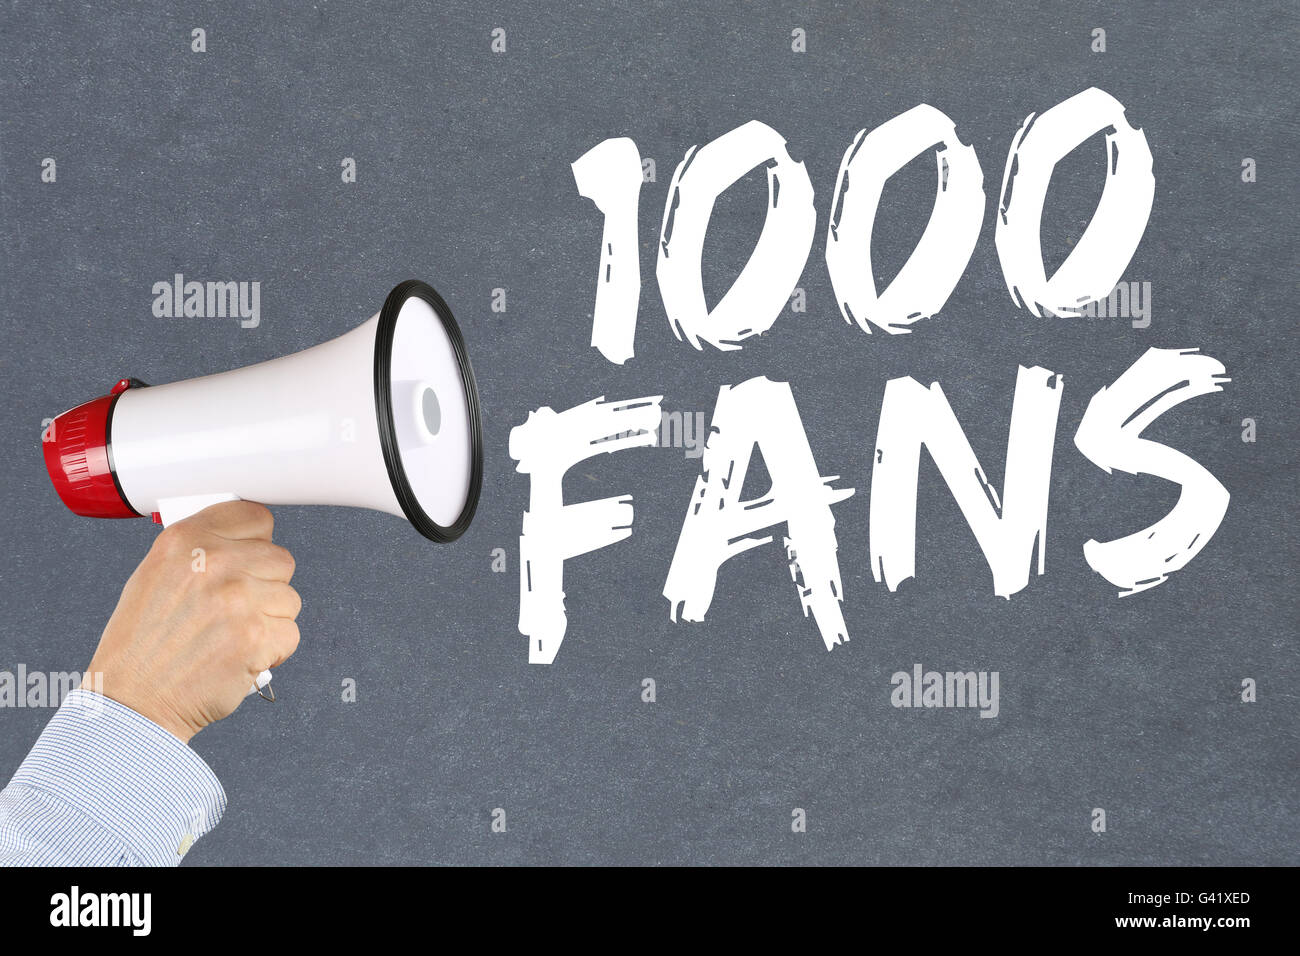 1000 fans likes social networking media part with megaphone Banque D'Images